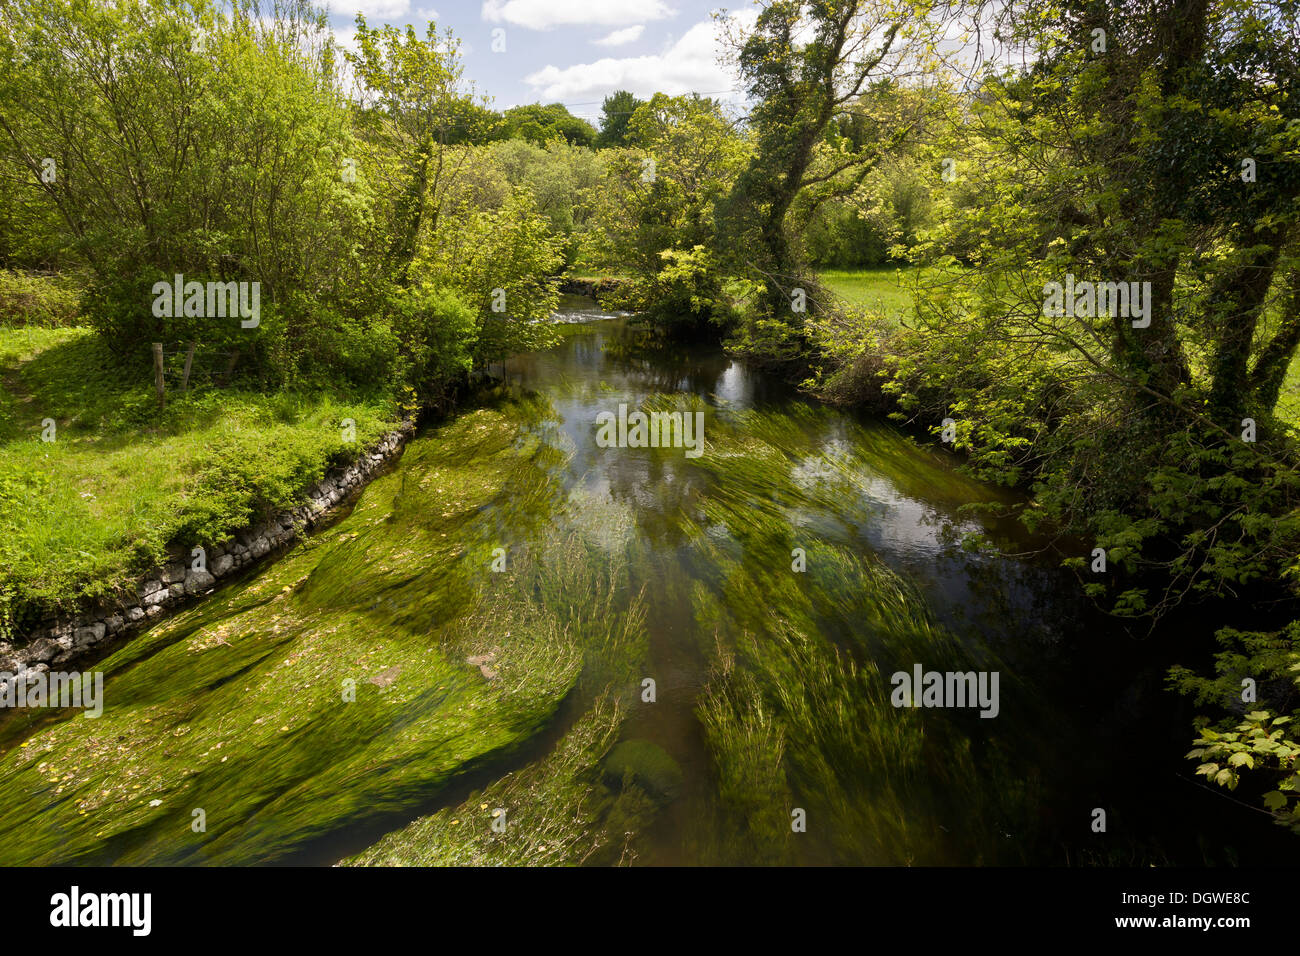 Rural idyll - the River Fergus, full of Water Crowfoot and other aquatic plants, below Lough Inchiquin, Co. Clare, Ireland. - Stock Image